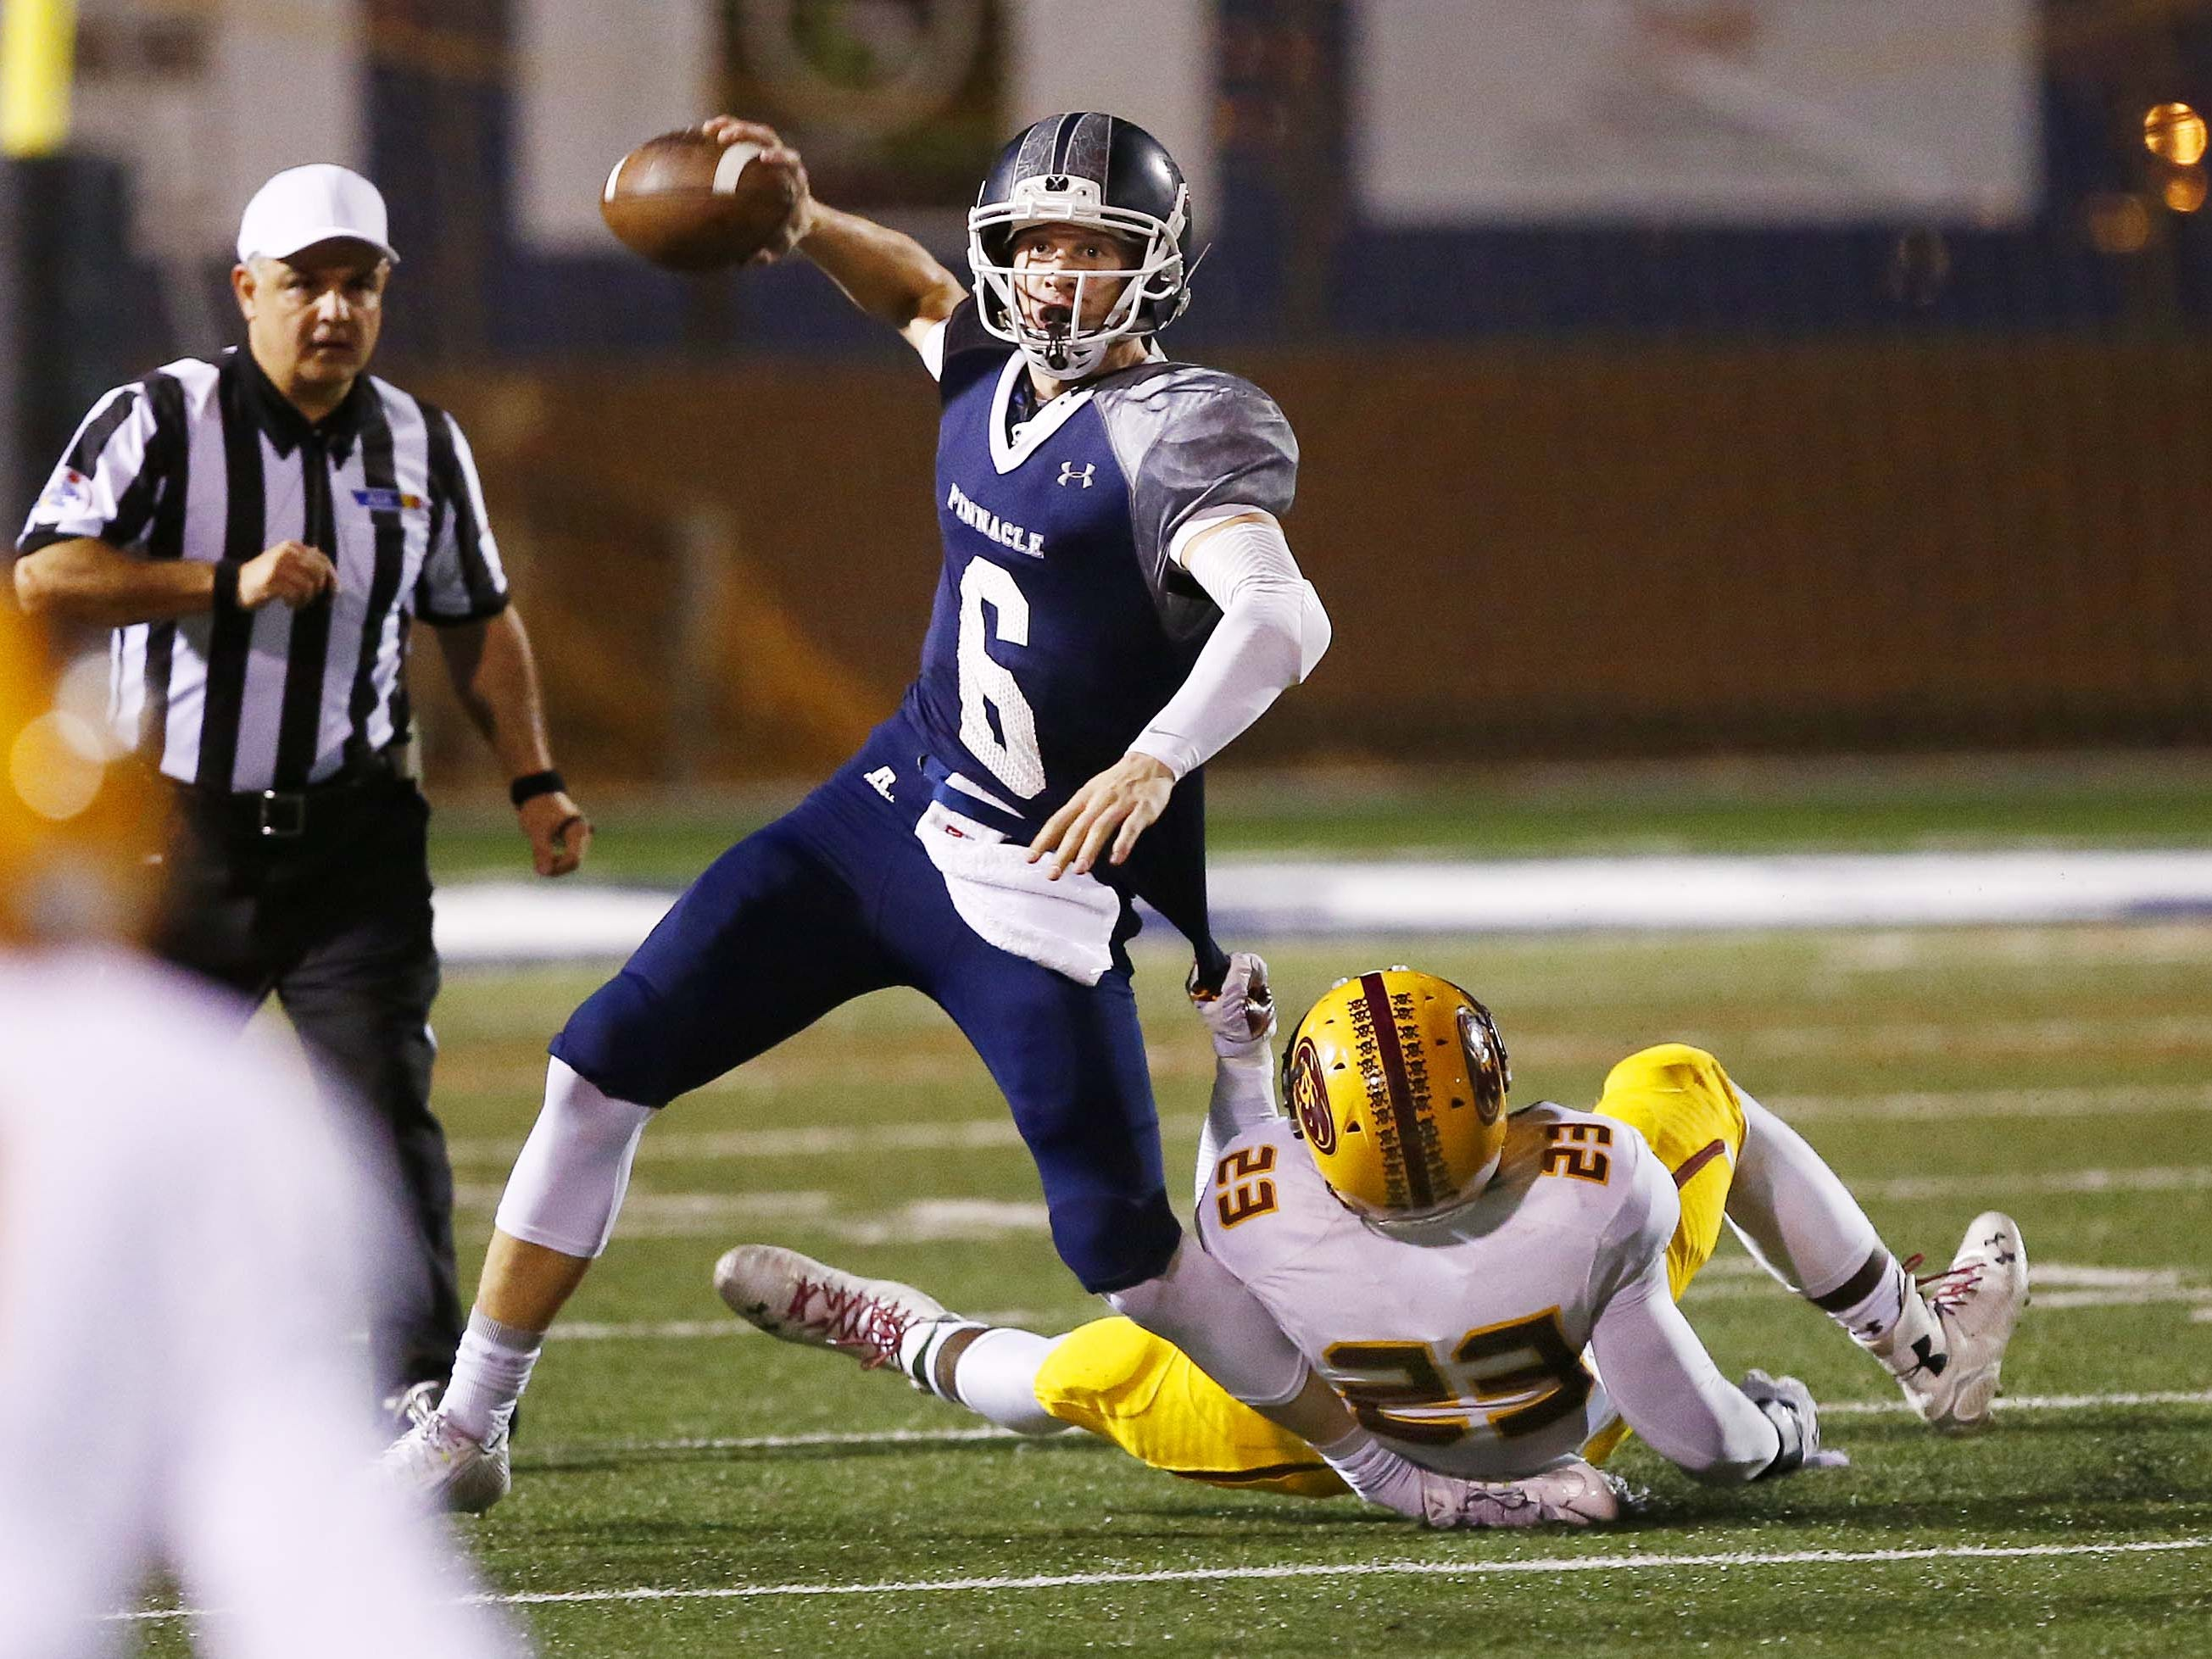 Mountain Pointe's #23 Vavrix Owens tries to tackle Pinnacle quarterback #6 Brian Lewerke in the first half during Division I football quarterfinal action on Friday, Nov. 14, 2014 at Pinnacle High School in Phoenix, AZ.